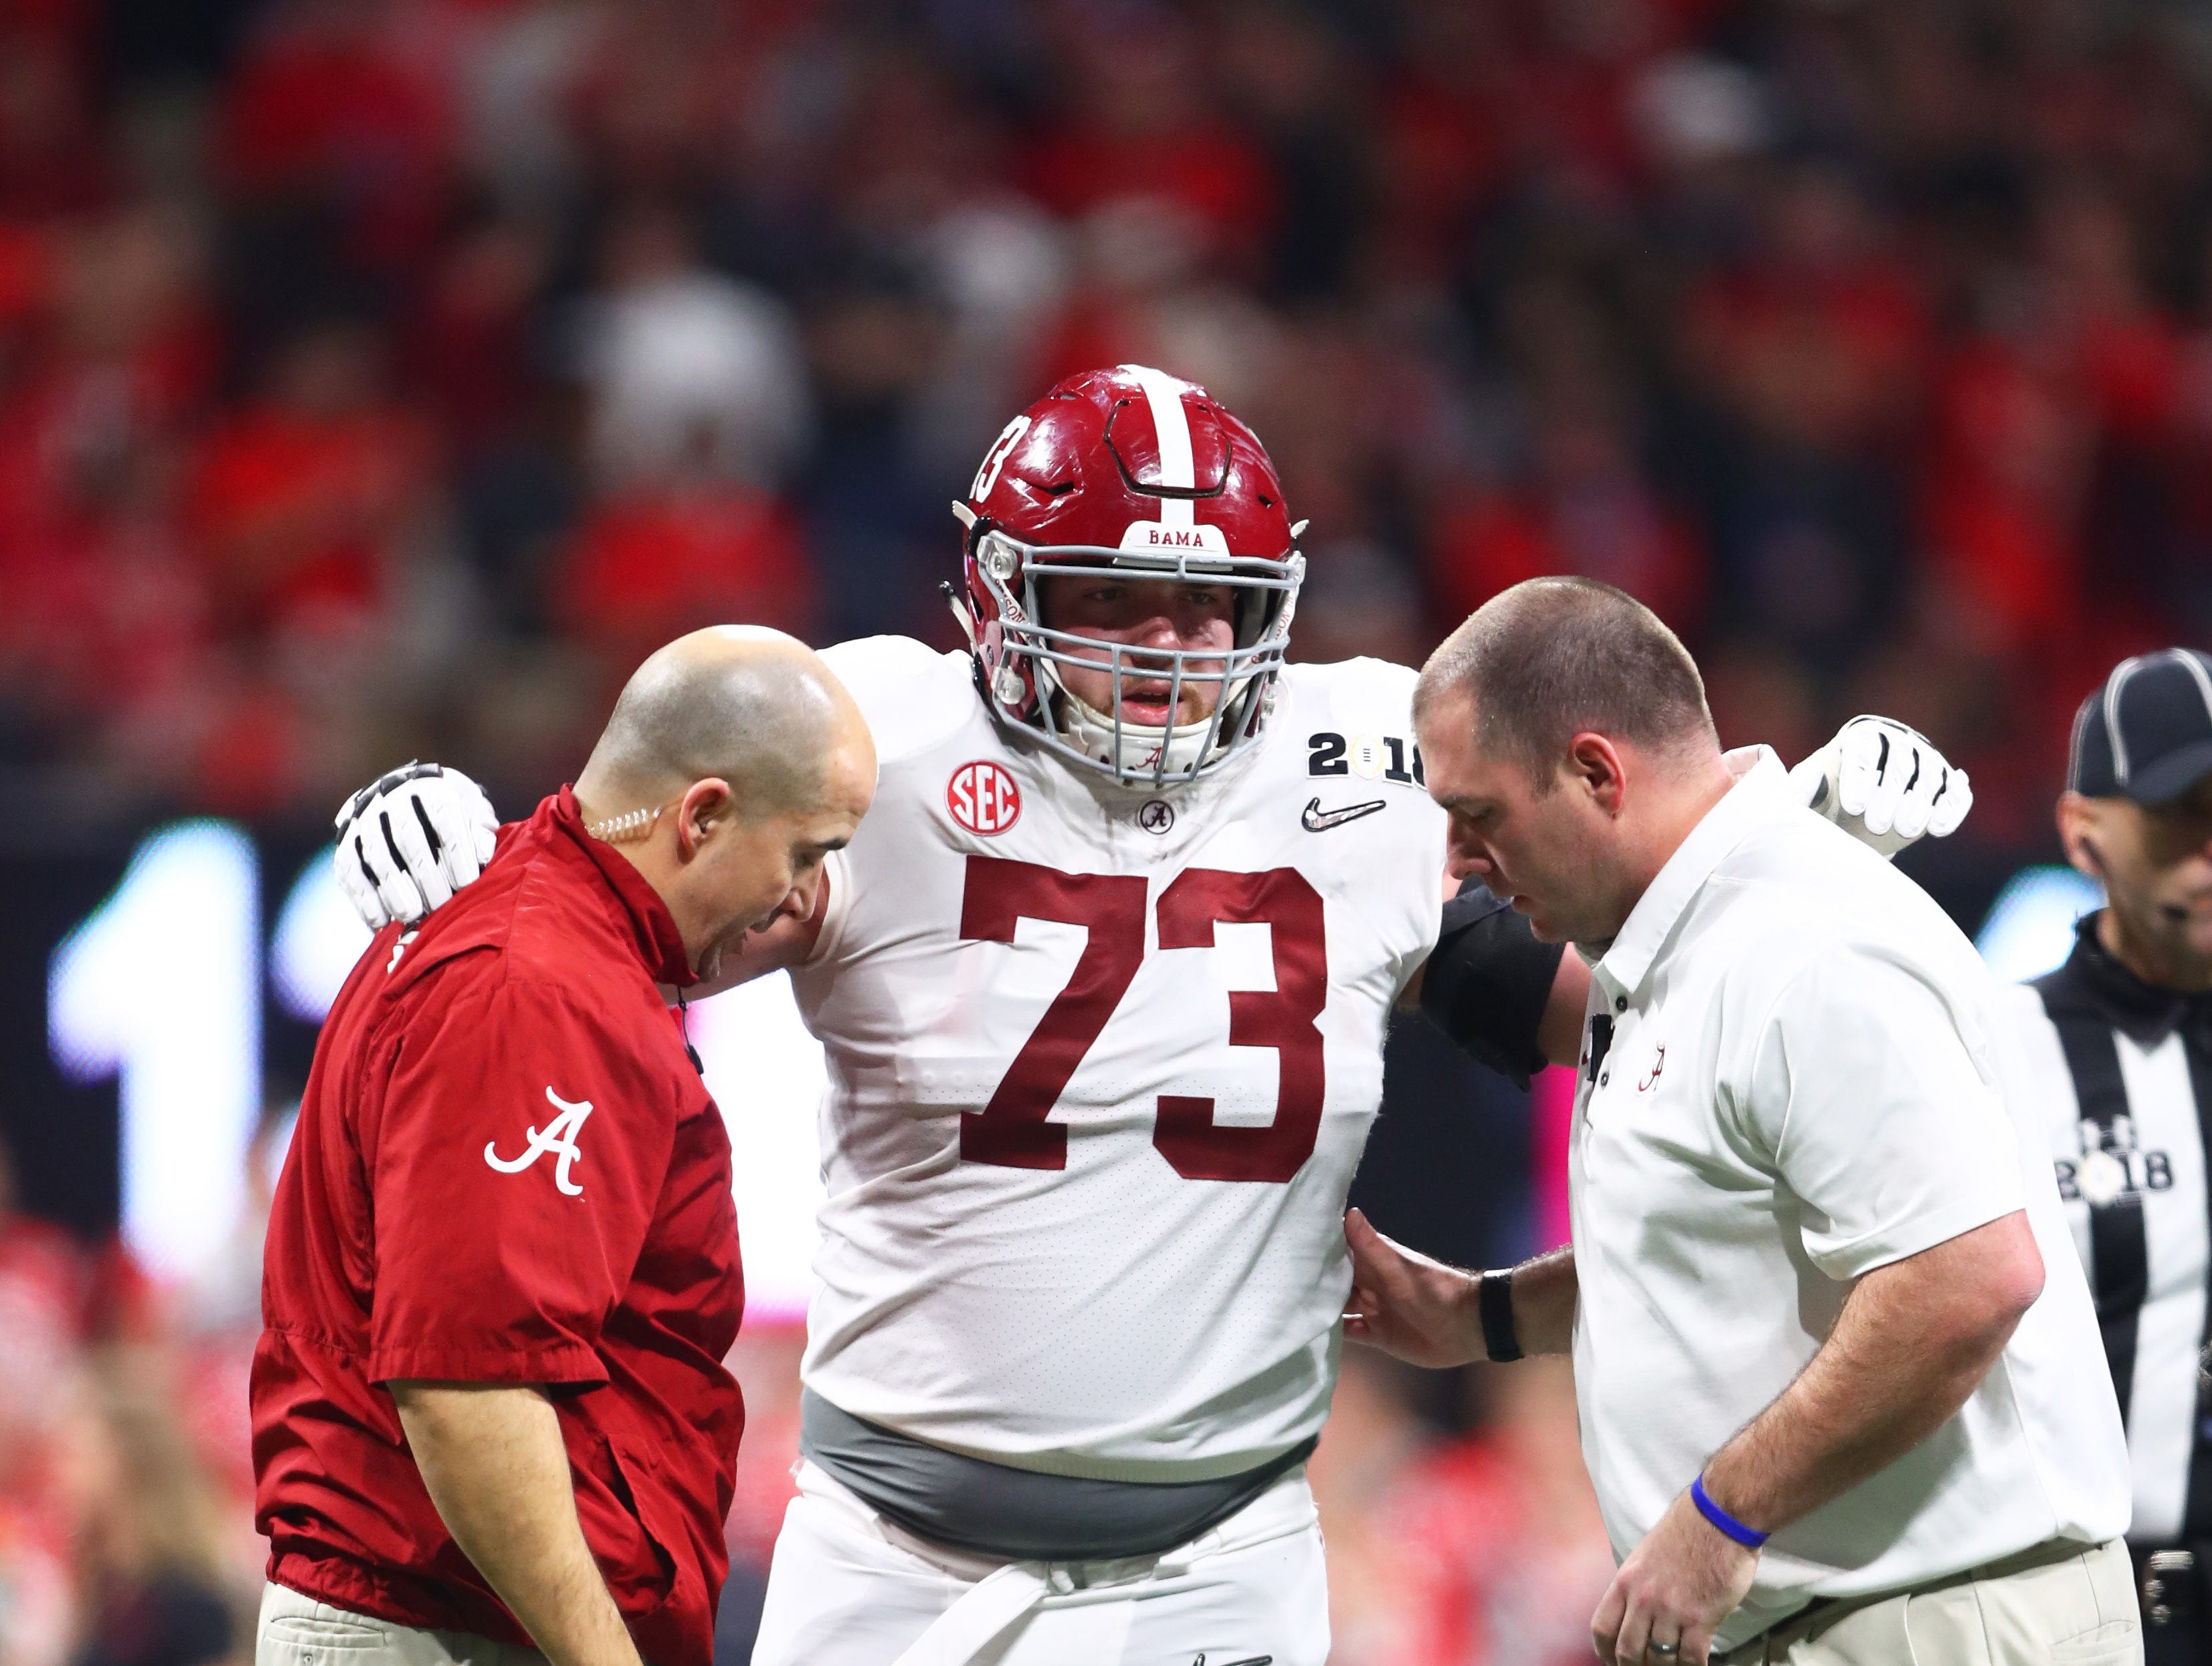 Jan 8, 2018; Atlanta, GA, USA; Trainers tend to Alabama Crimson Tide offensive lineman Jonah Williams (73) against the Georgia Bulldogs in the 2018 CFP national championship college football game at Mercedes-Benz Stadium. Mandatory Credit: Mark J. Rebilas-USA TODAY Sports